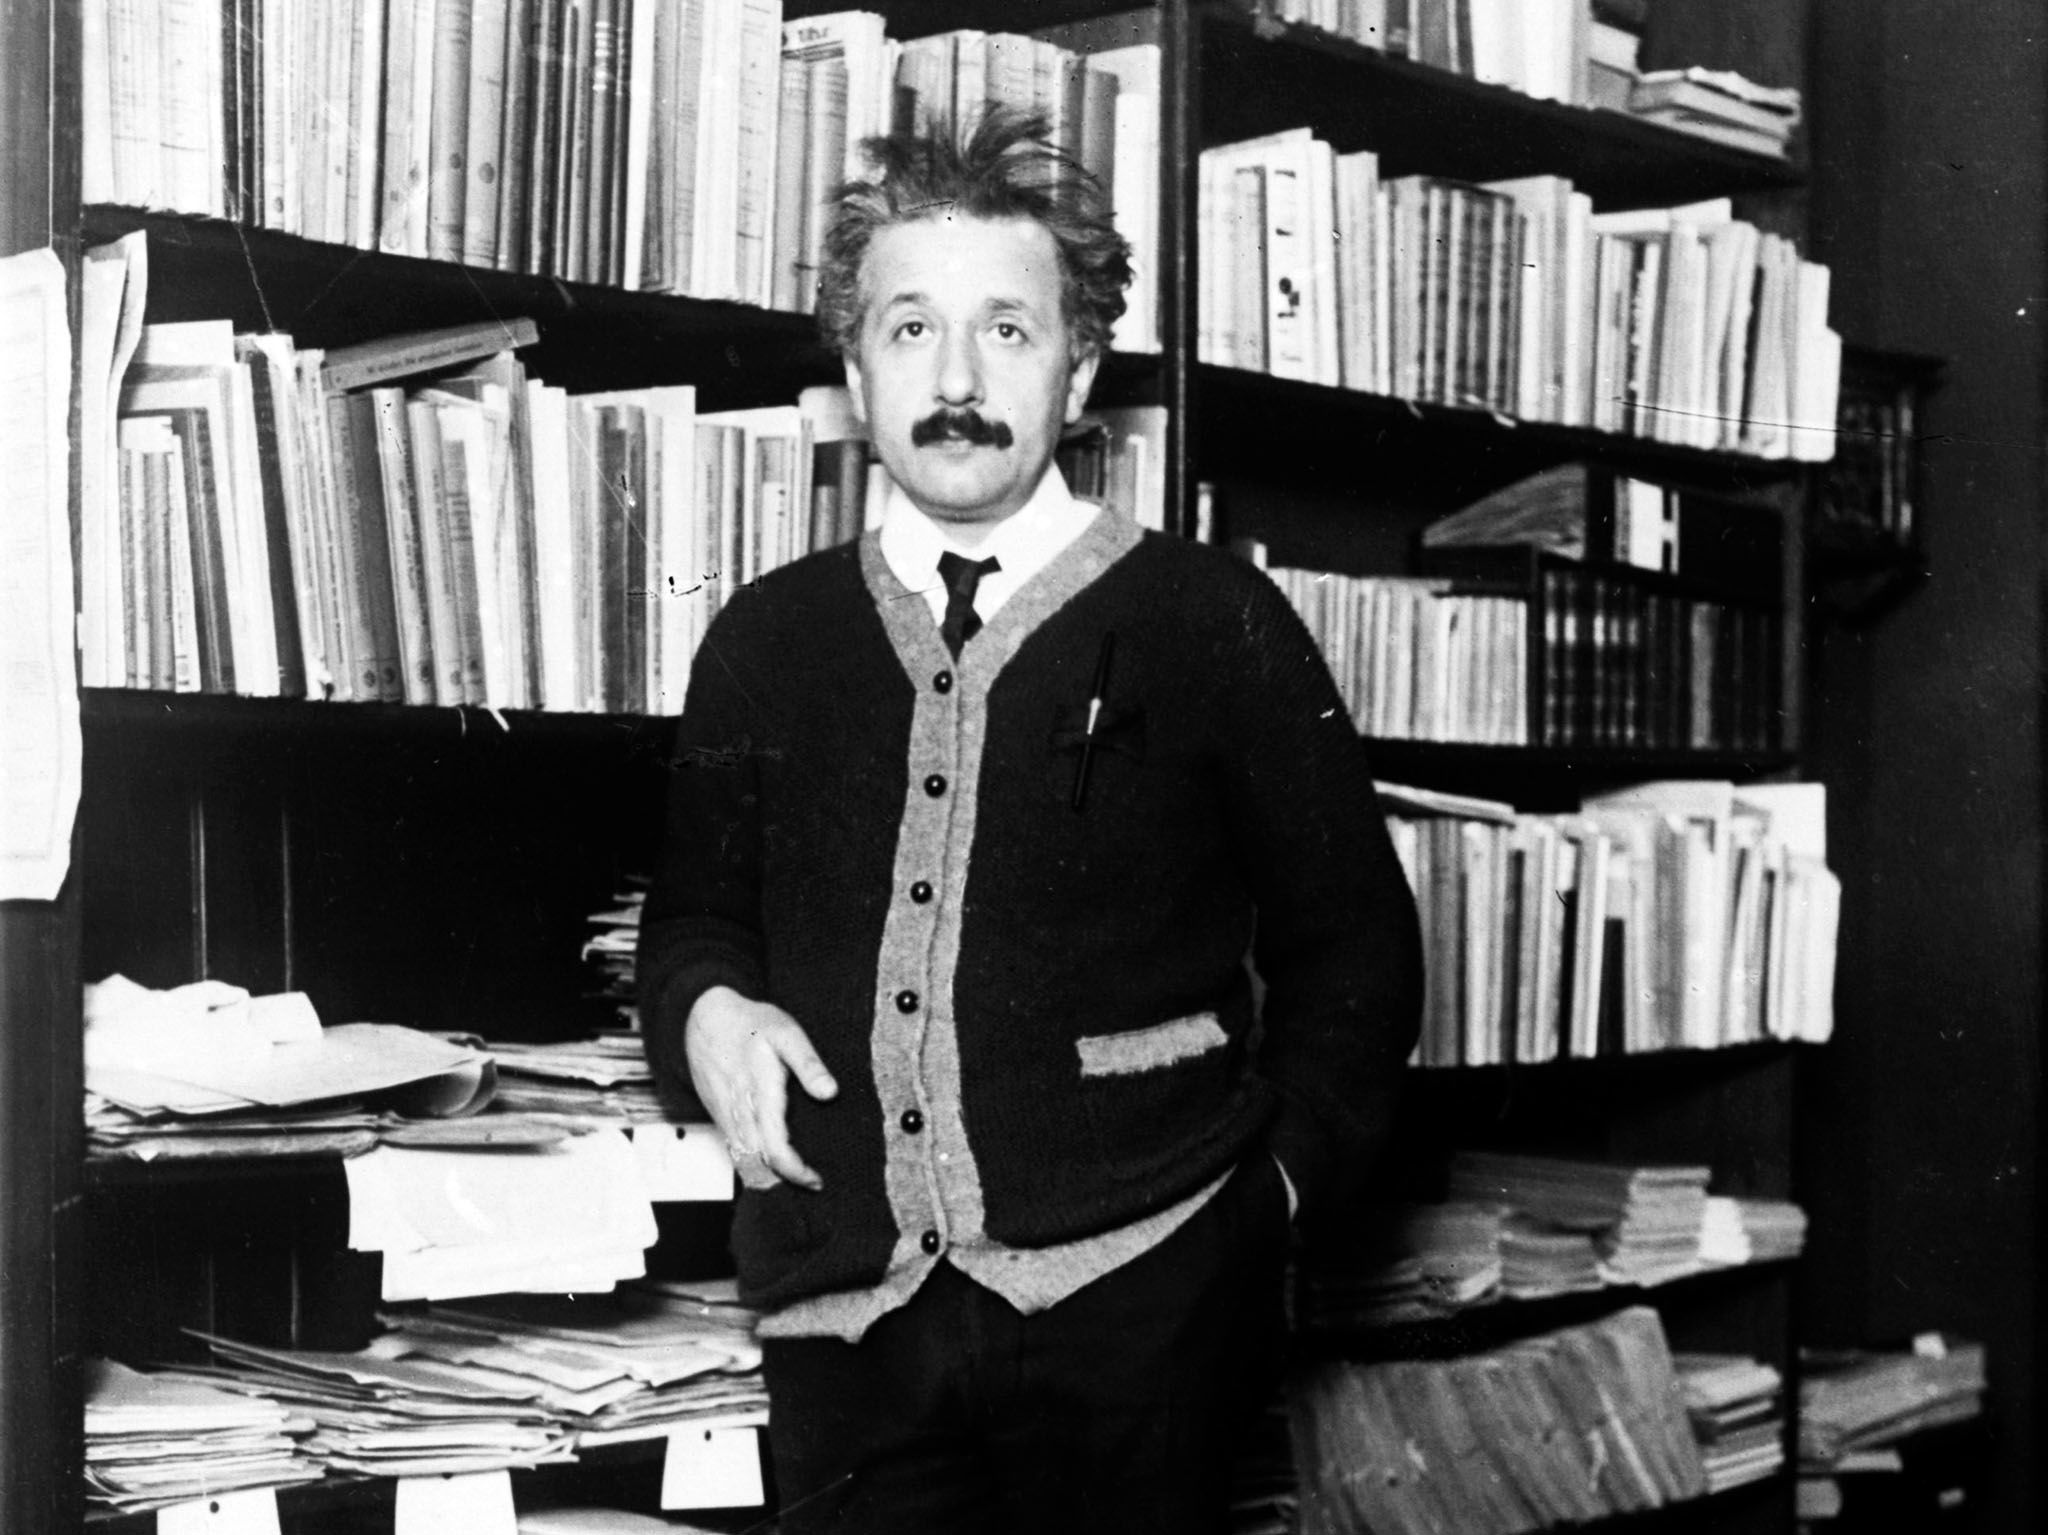 Circa 1925:  Professor Albert Einstein (1879 - 1955), mathematical physicist at home. This image... [Photo of the day - آوریل 2017]